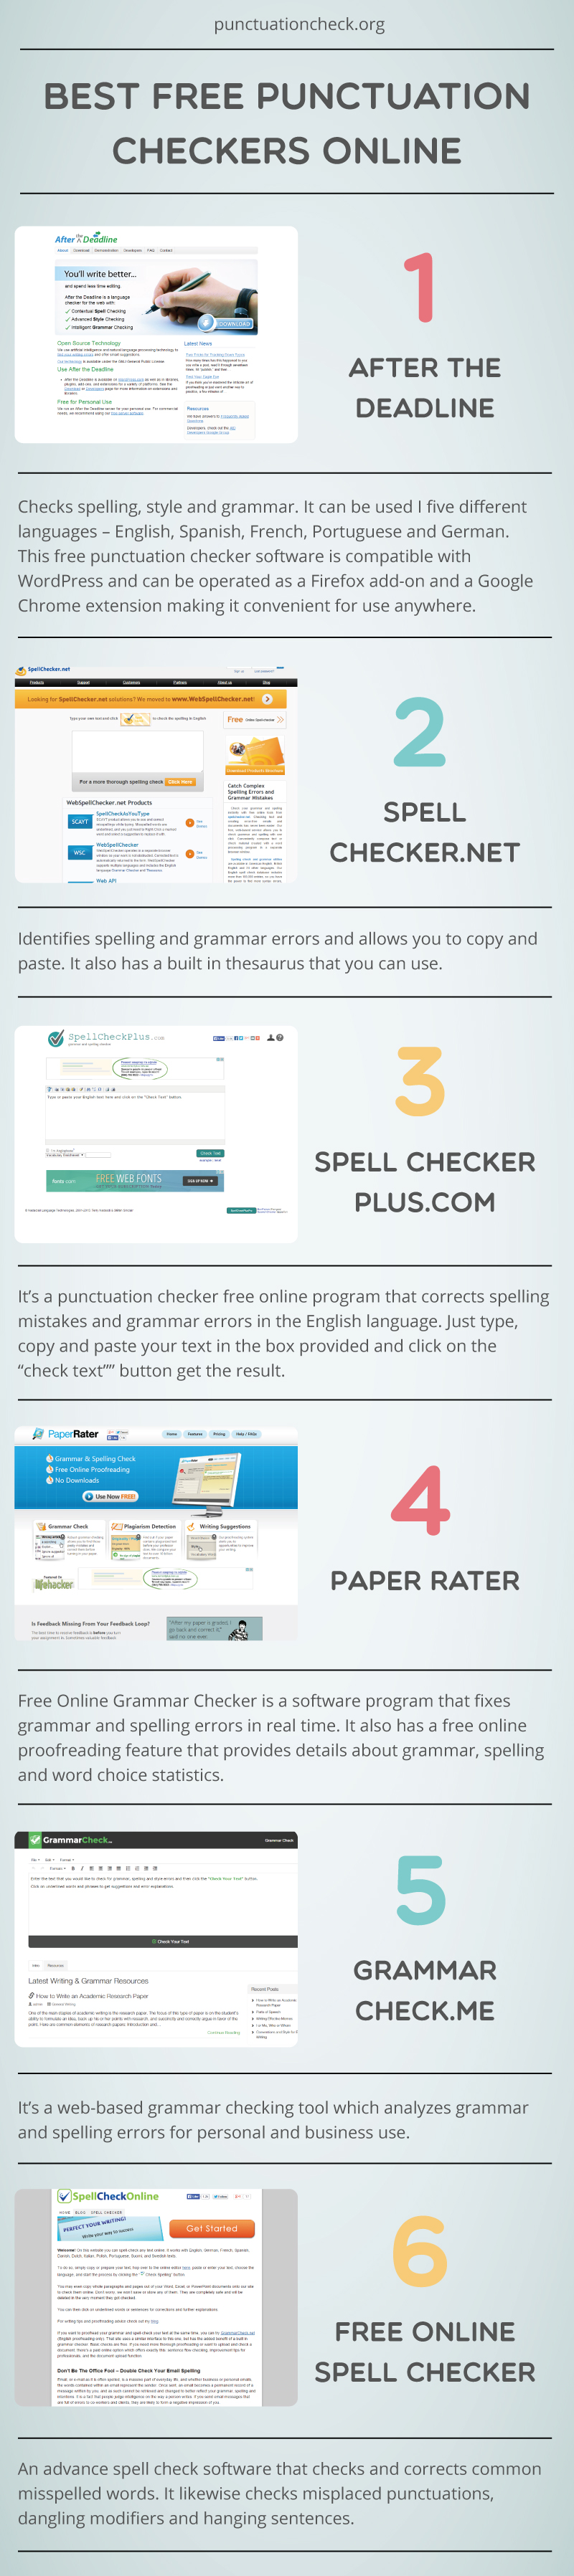 best free punctuation checker